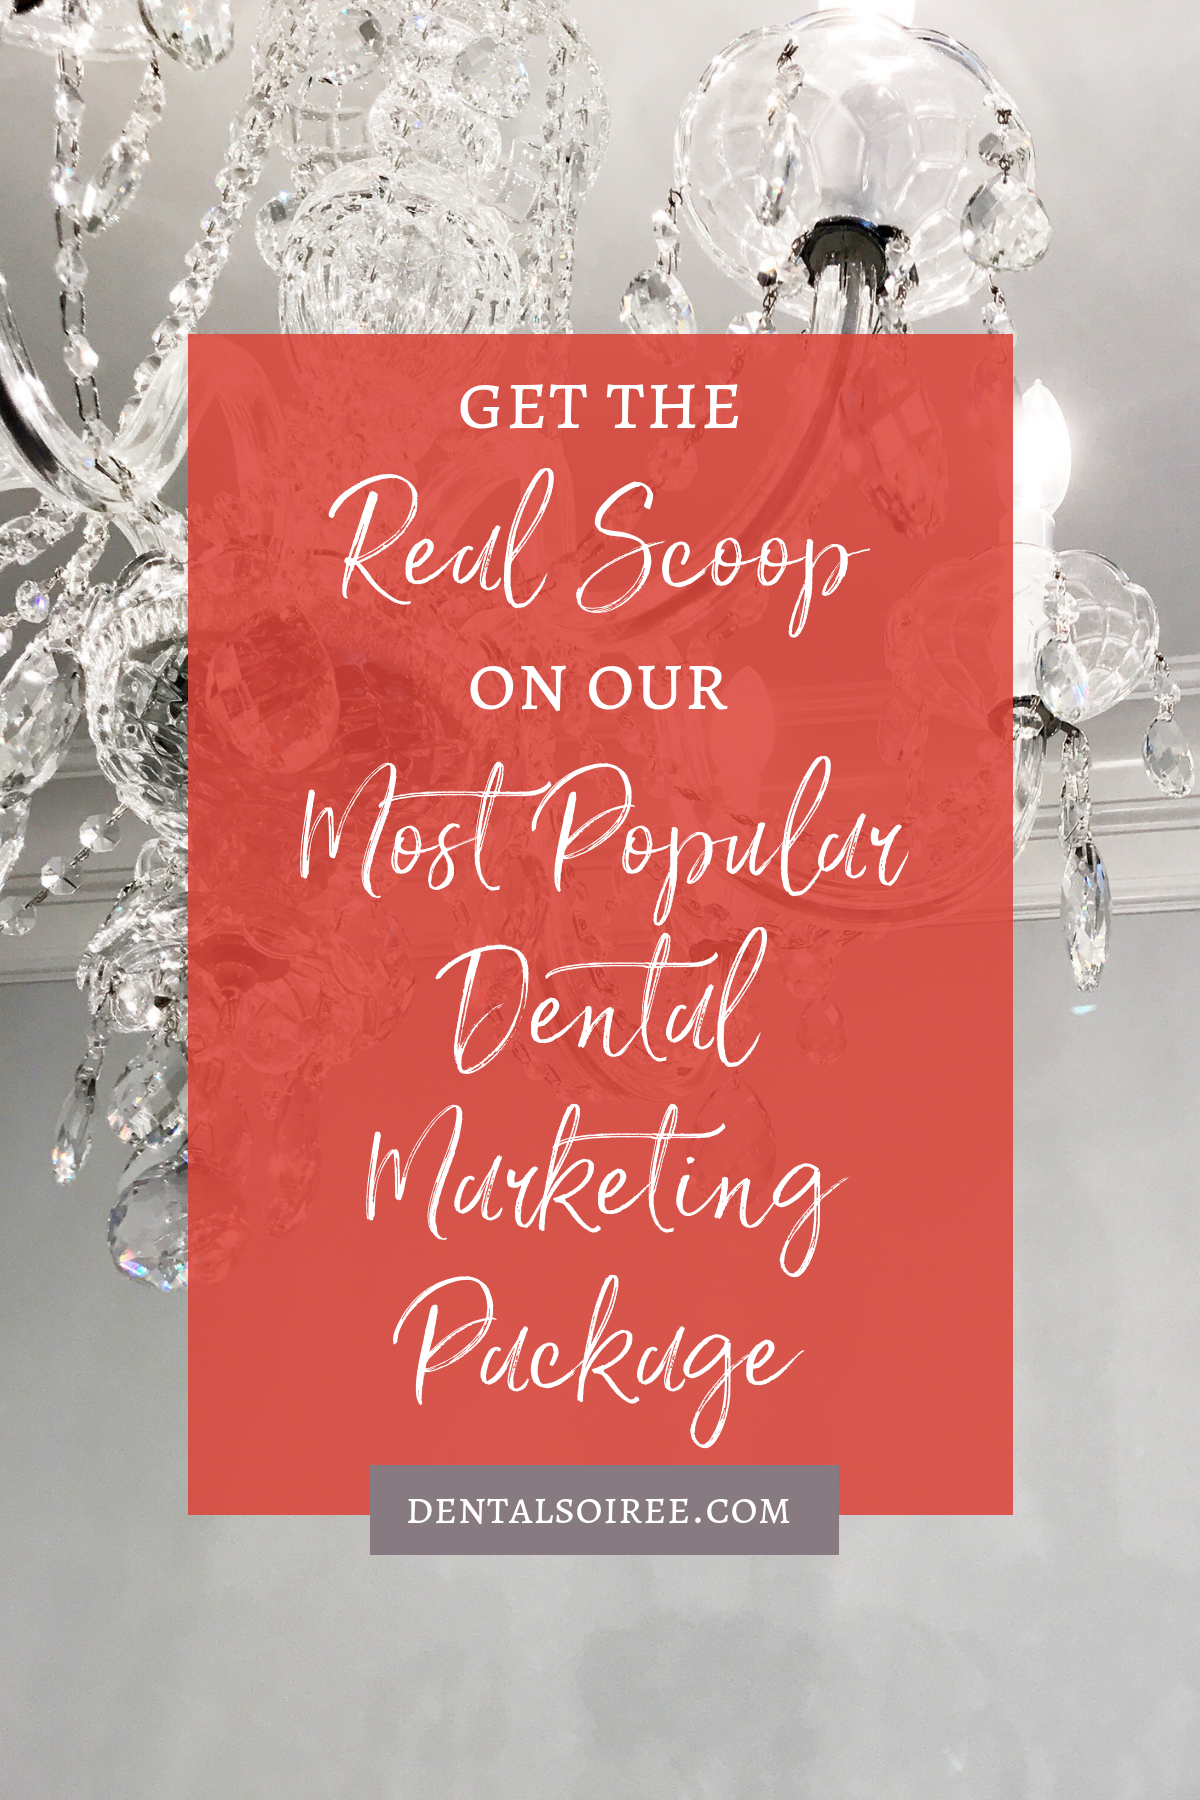 Meet Our Most Popular Dental Marketing Package!